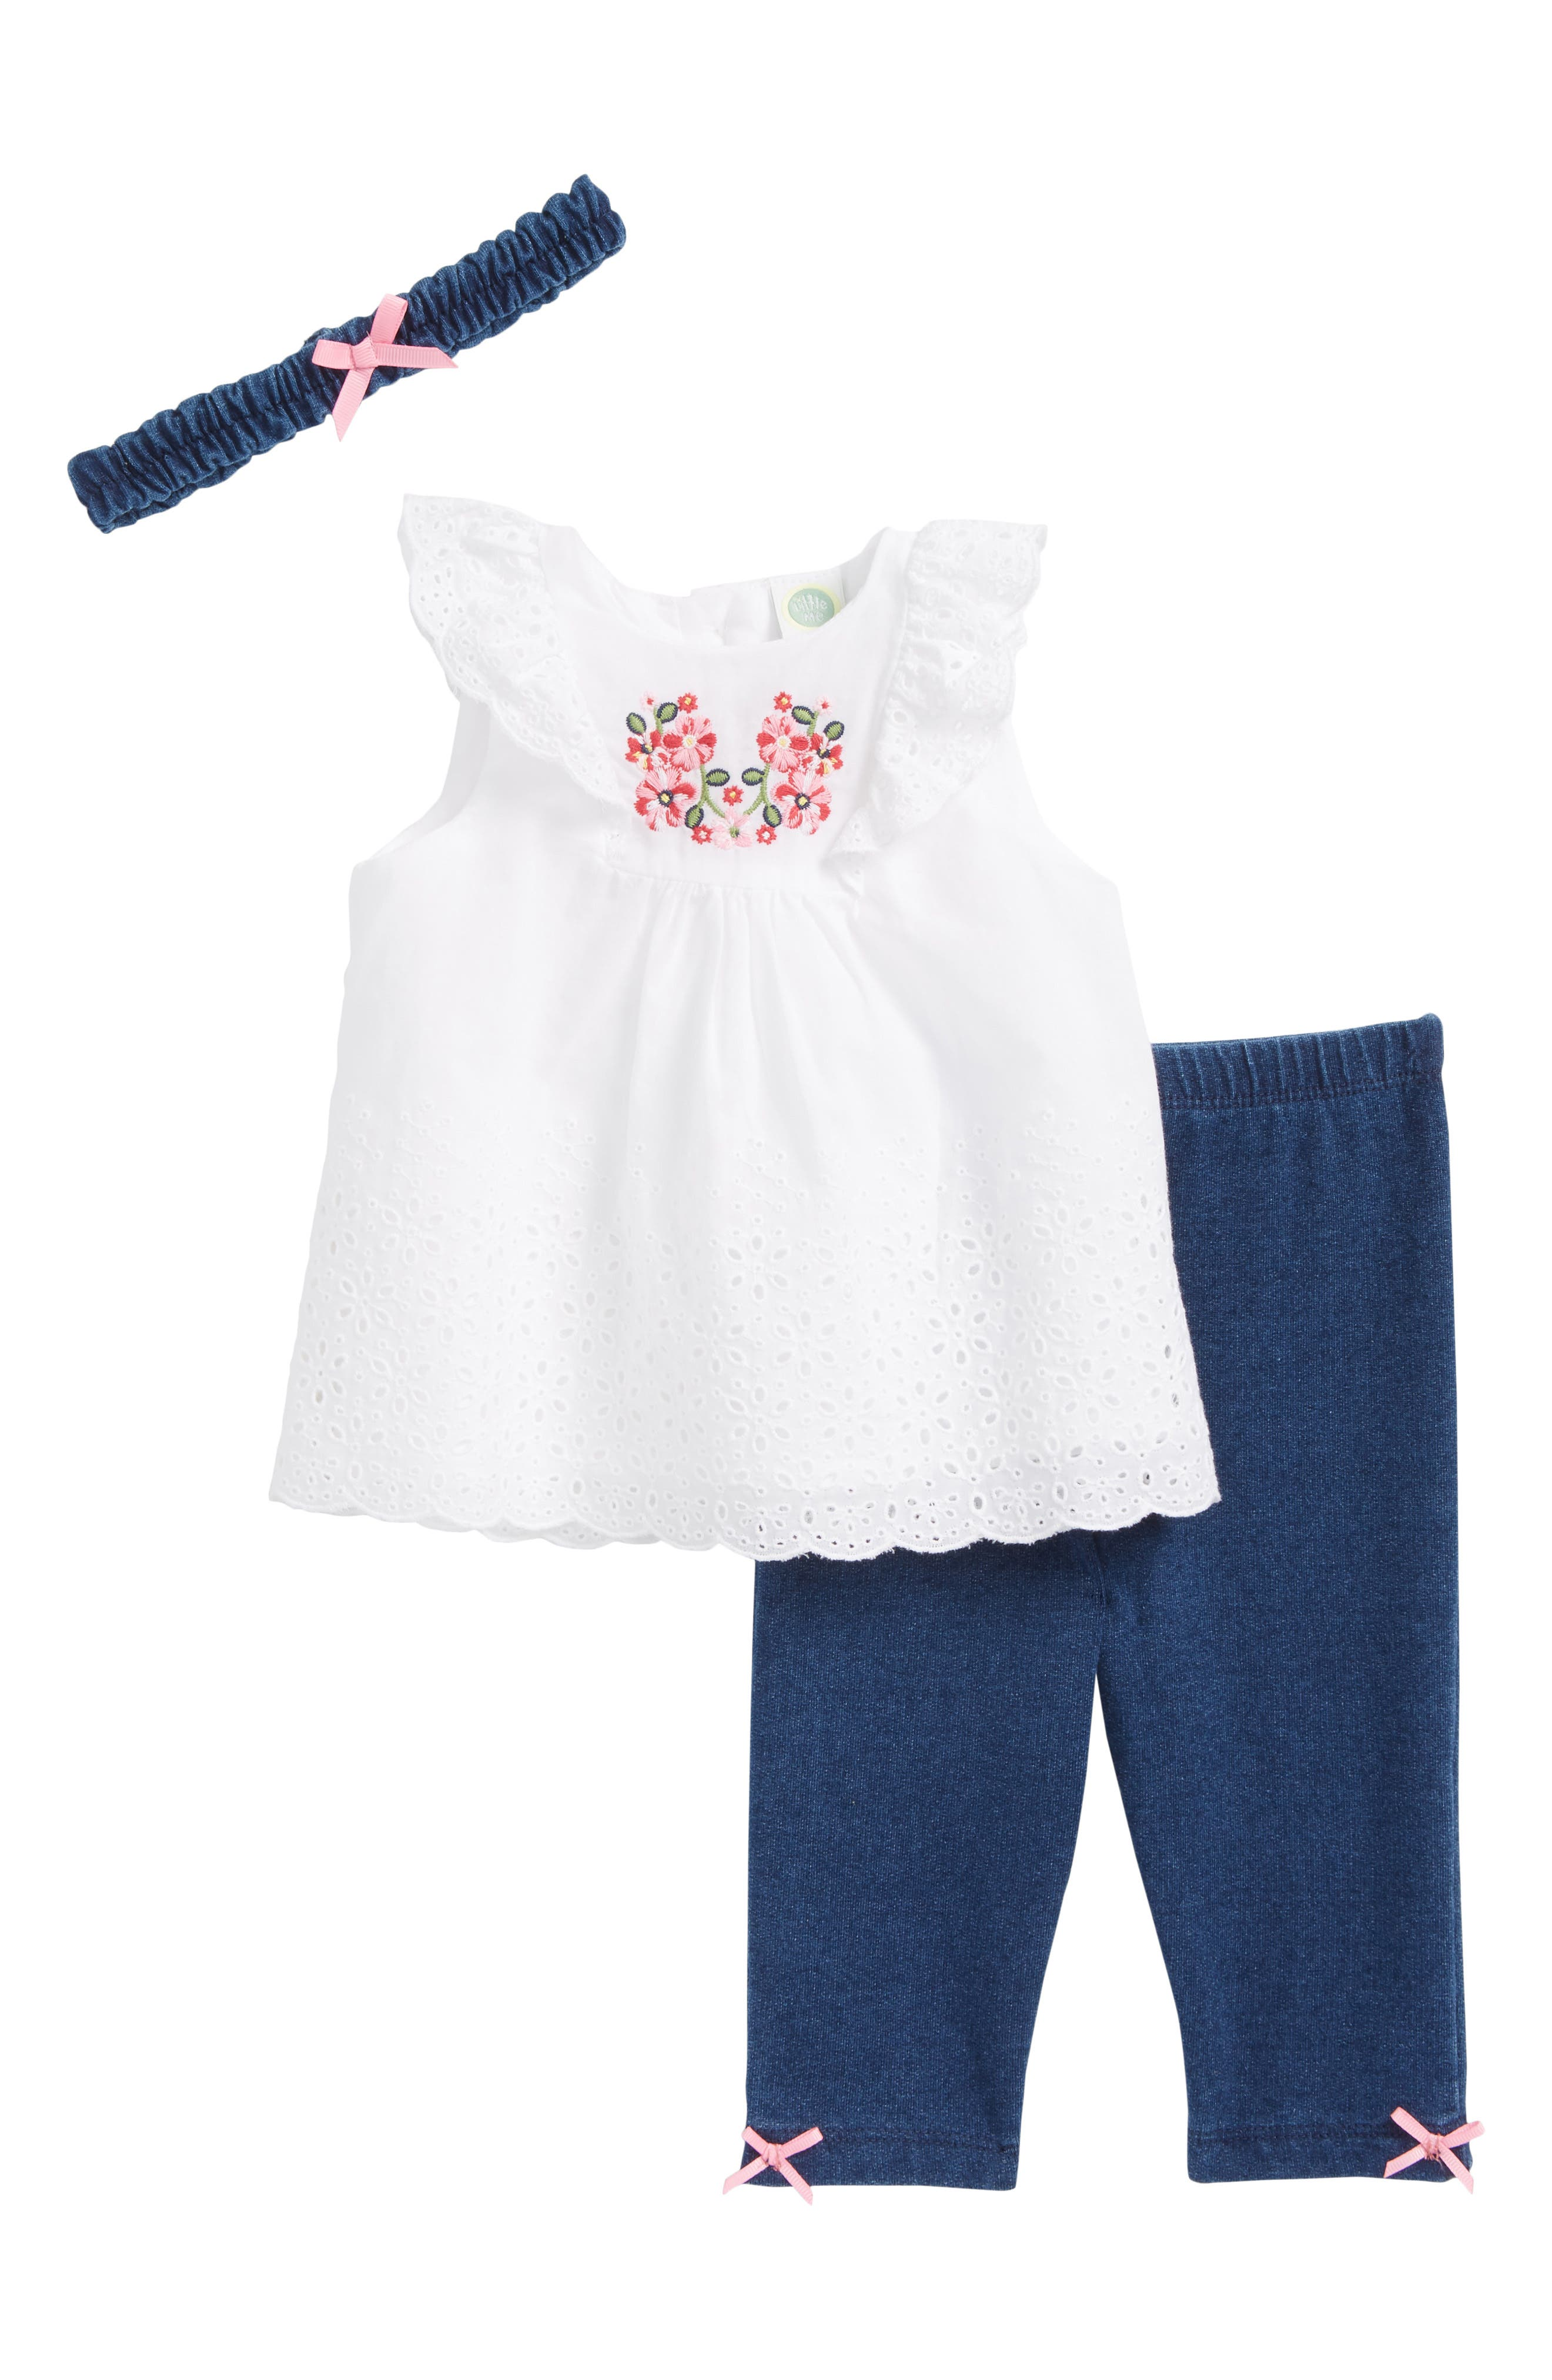 Embroidered Eyelet Tunic, Leggings & Head Wrap Set,                             Main thumbnail 1, color,                             187